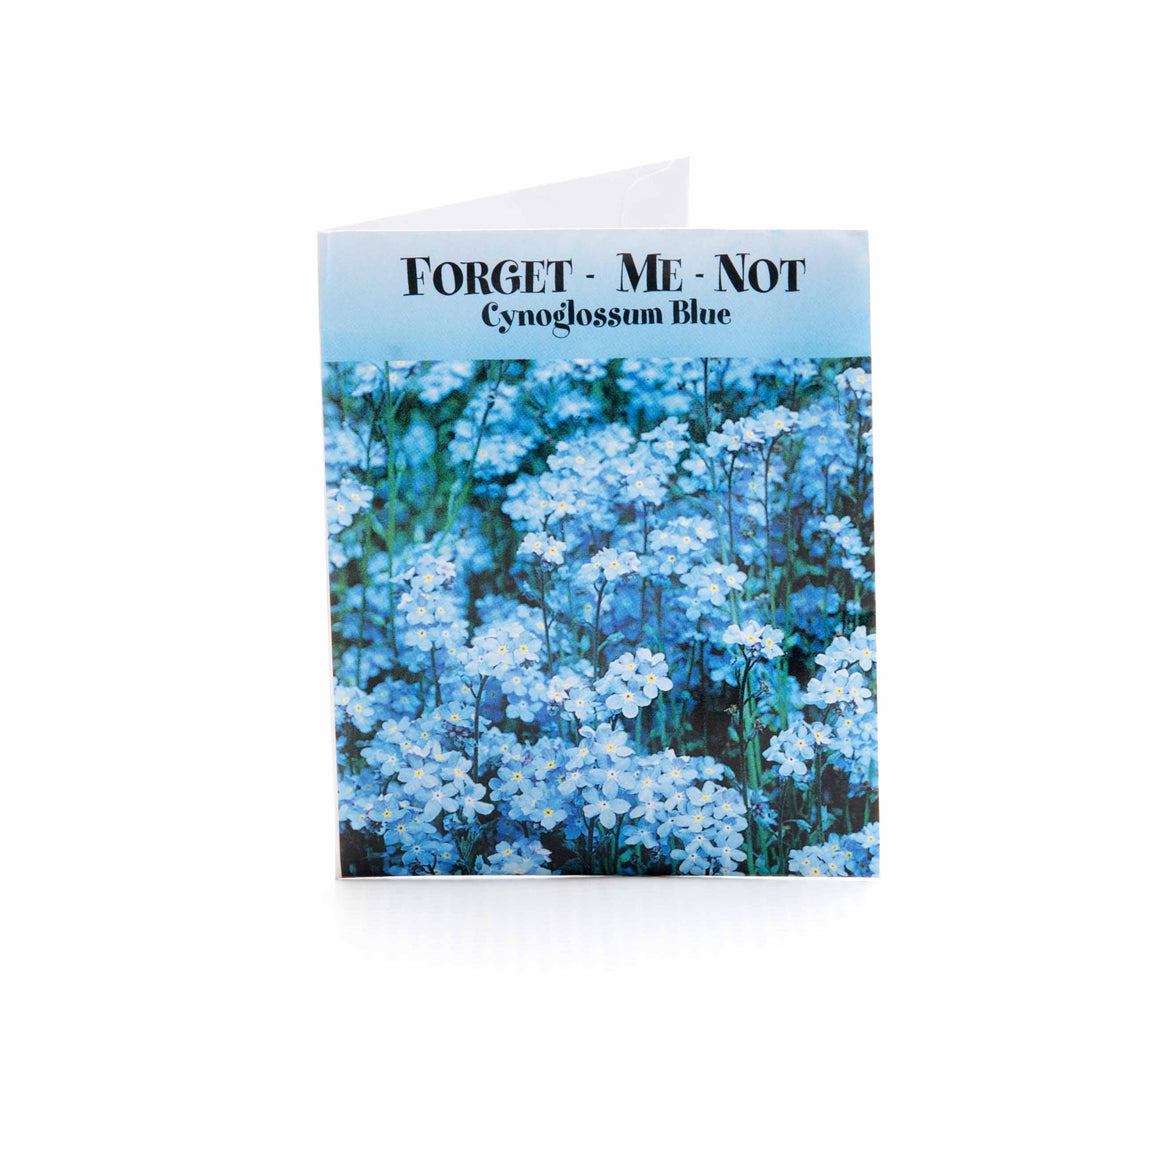 Forget-Me-Not Seed Packet product image - included with Dr. Don's Care Packages Sympathy Condolence Care Package.